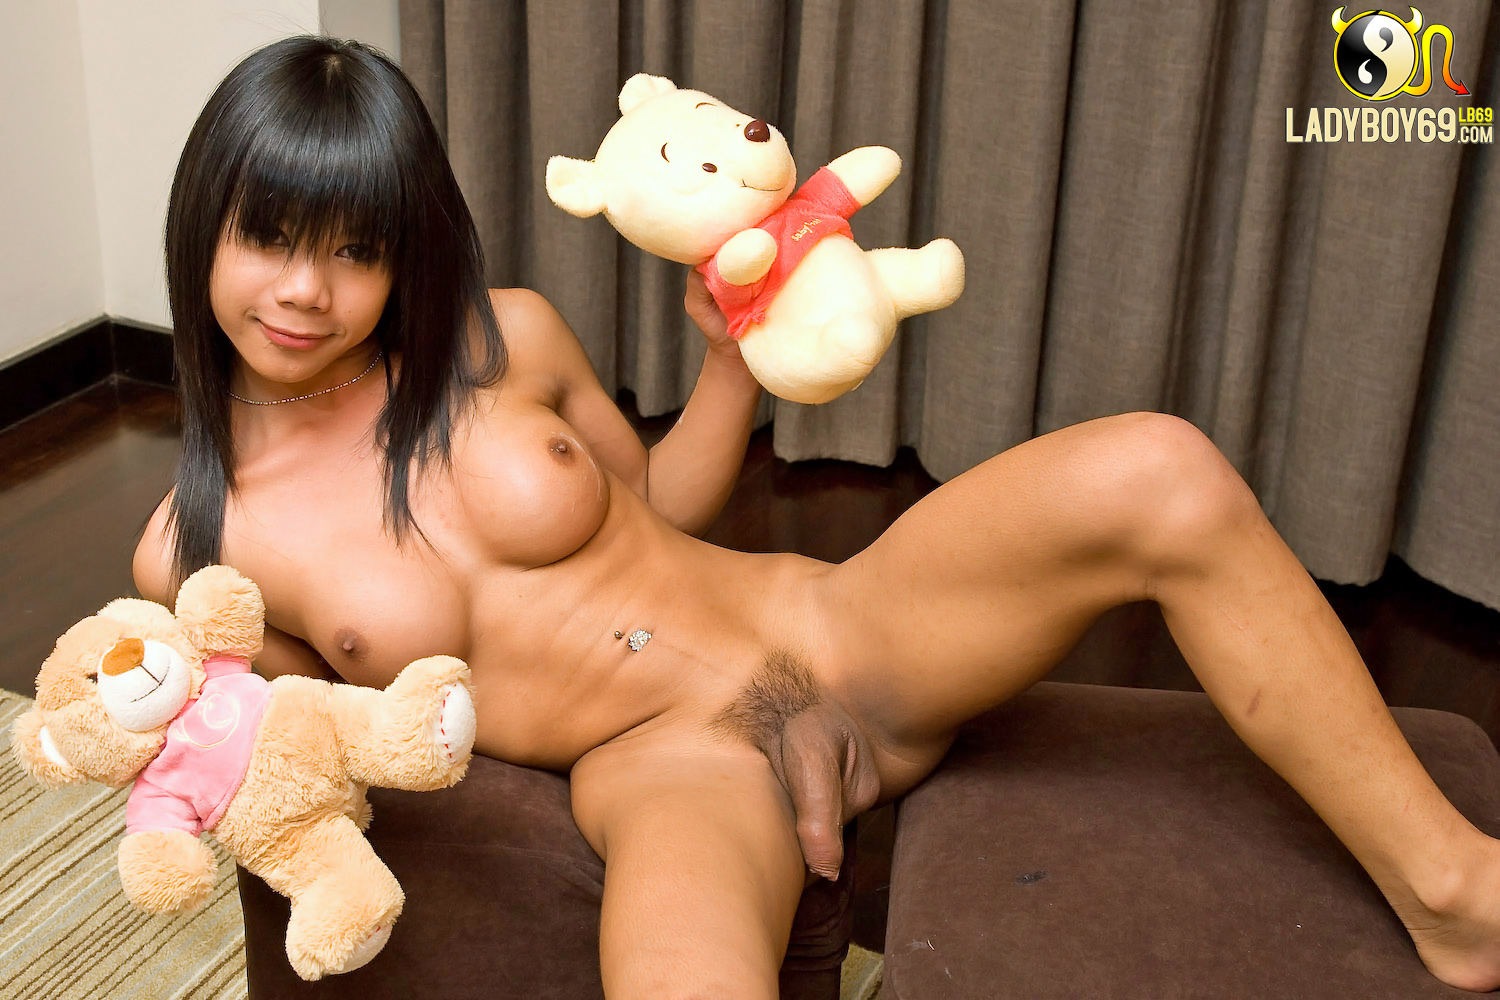 Free dounlod monstar cartun sex vidio softcore scene